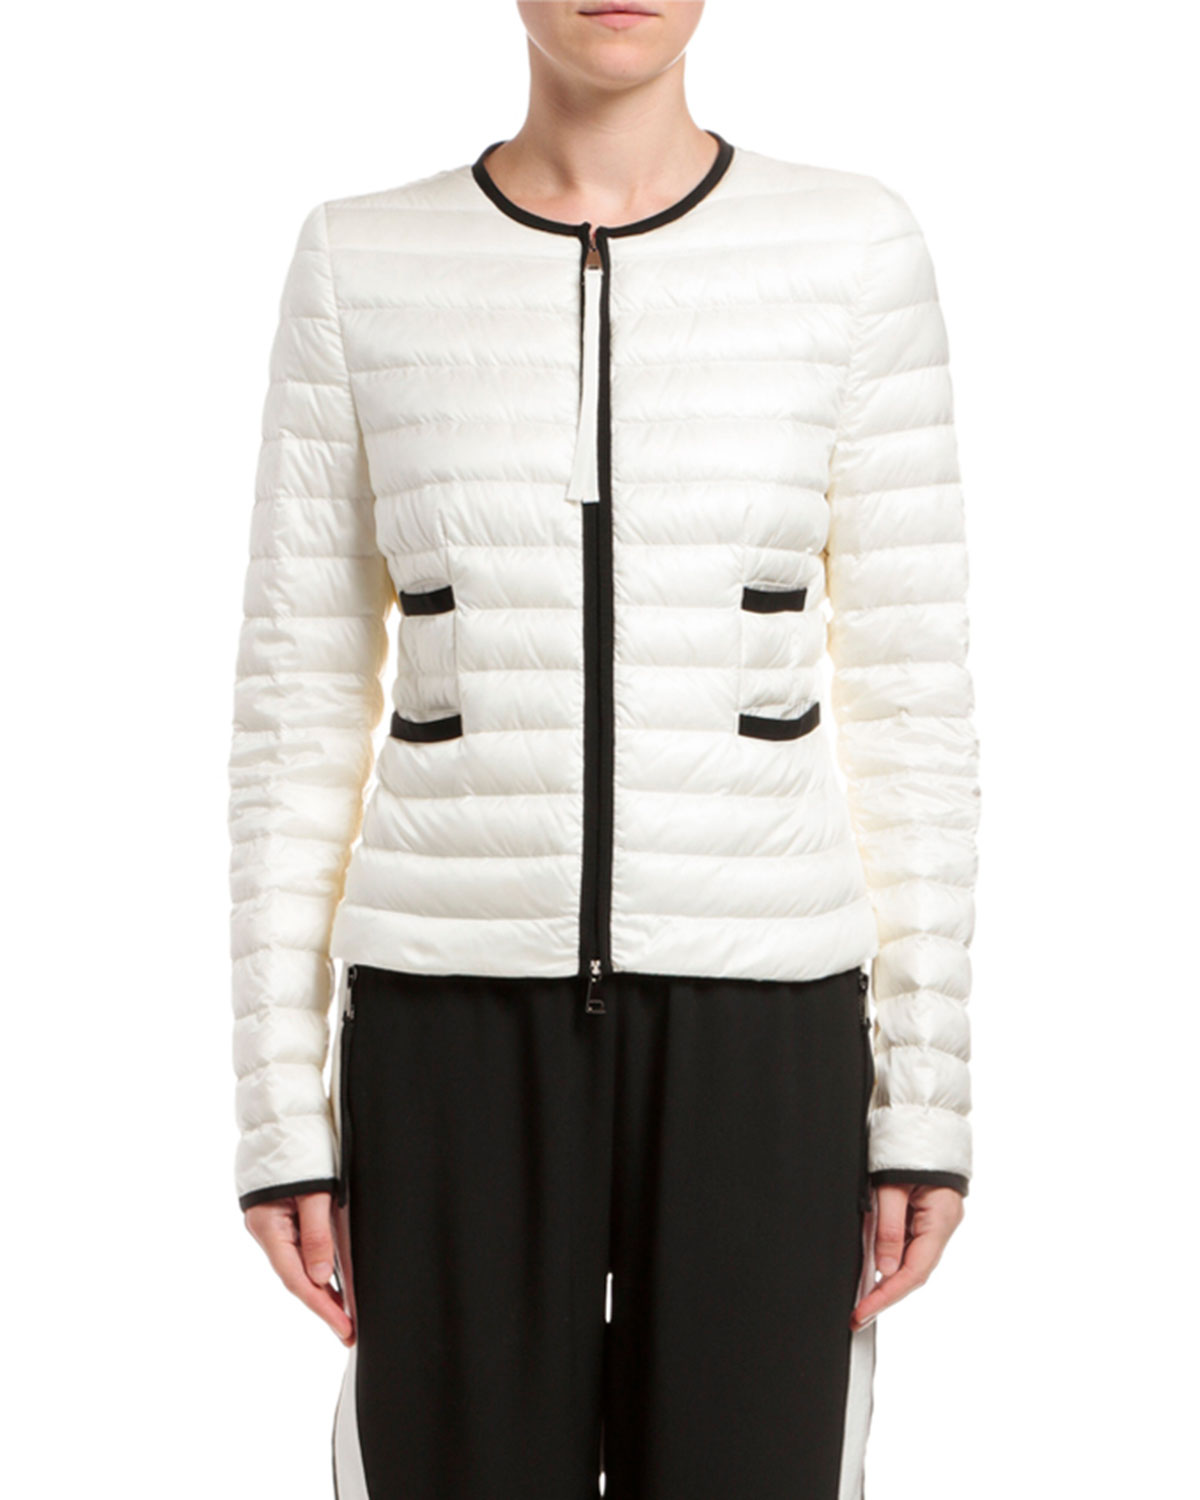 Moncler Baillet Contrast-Trim Puffer Coat, White